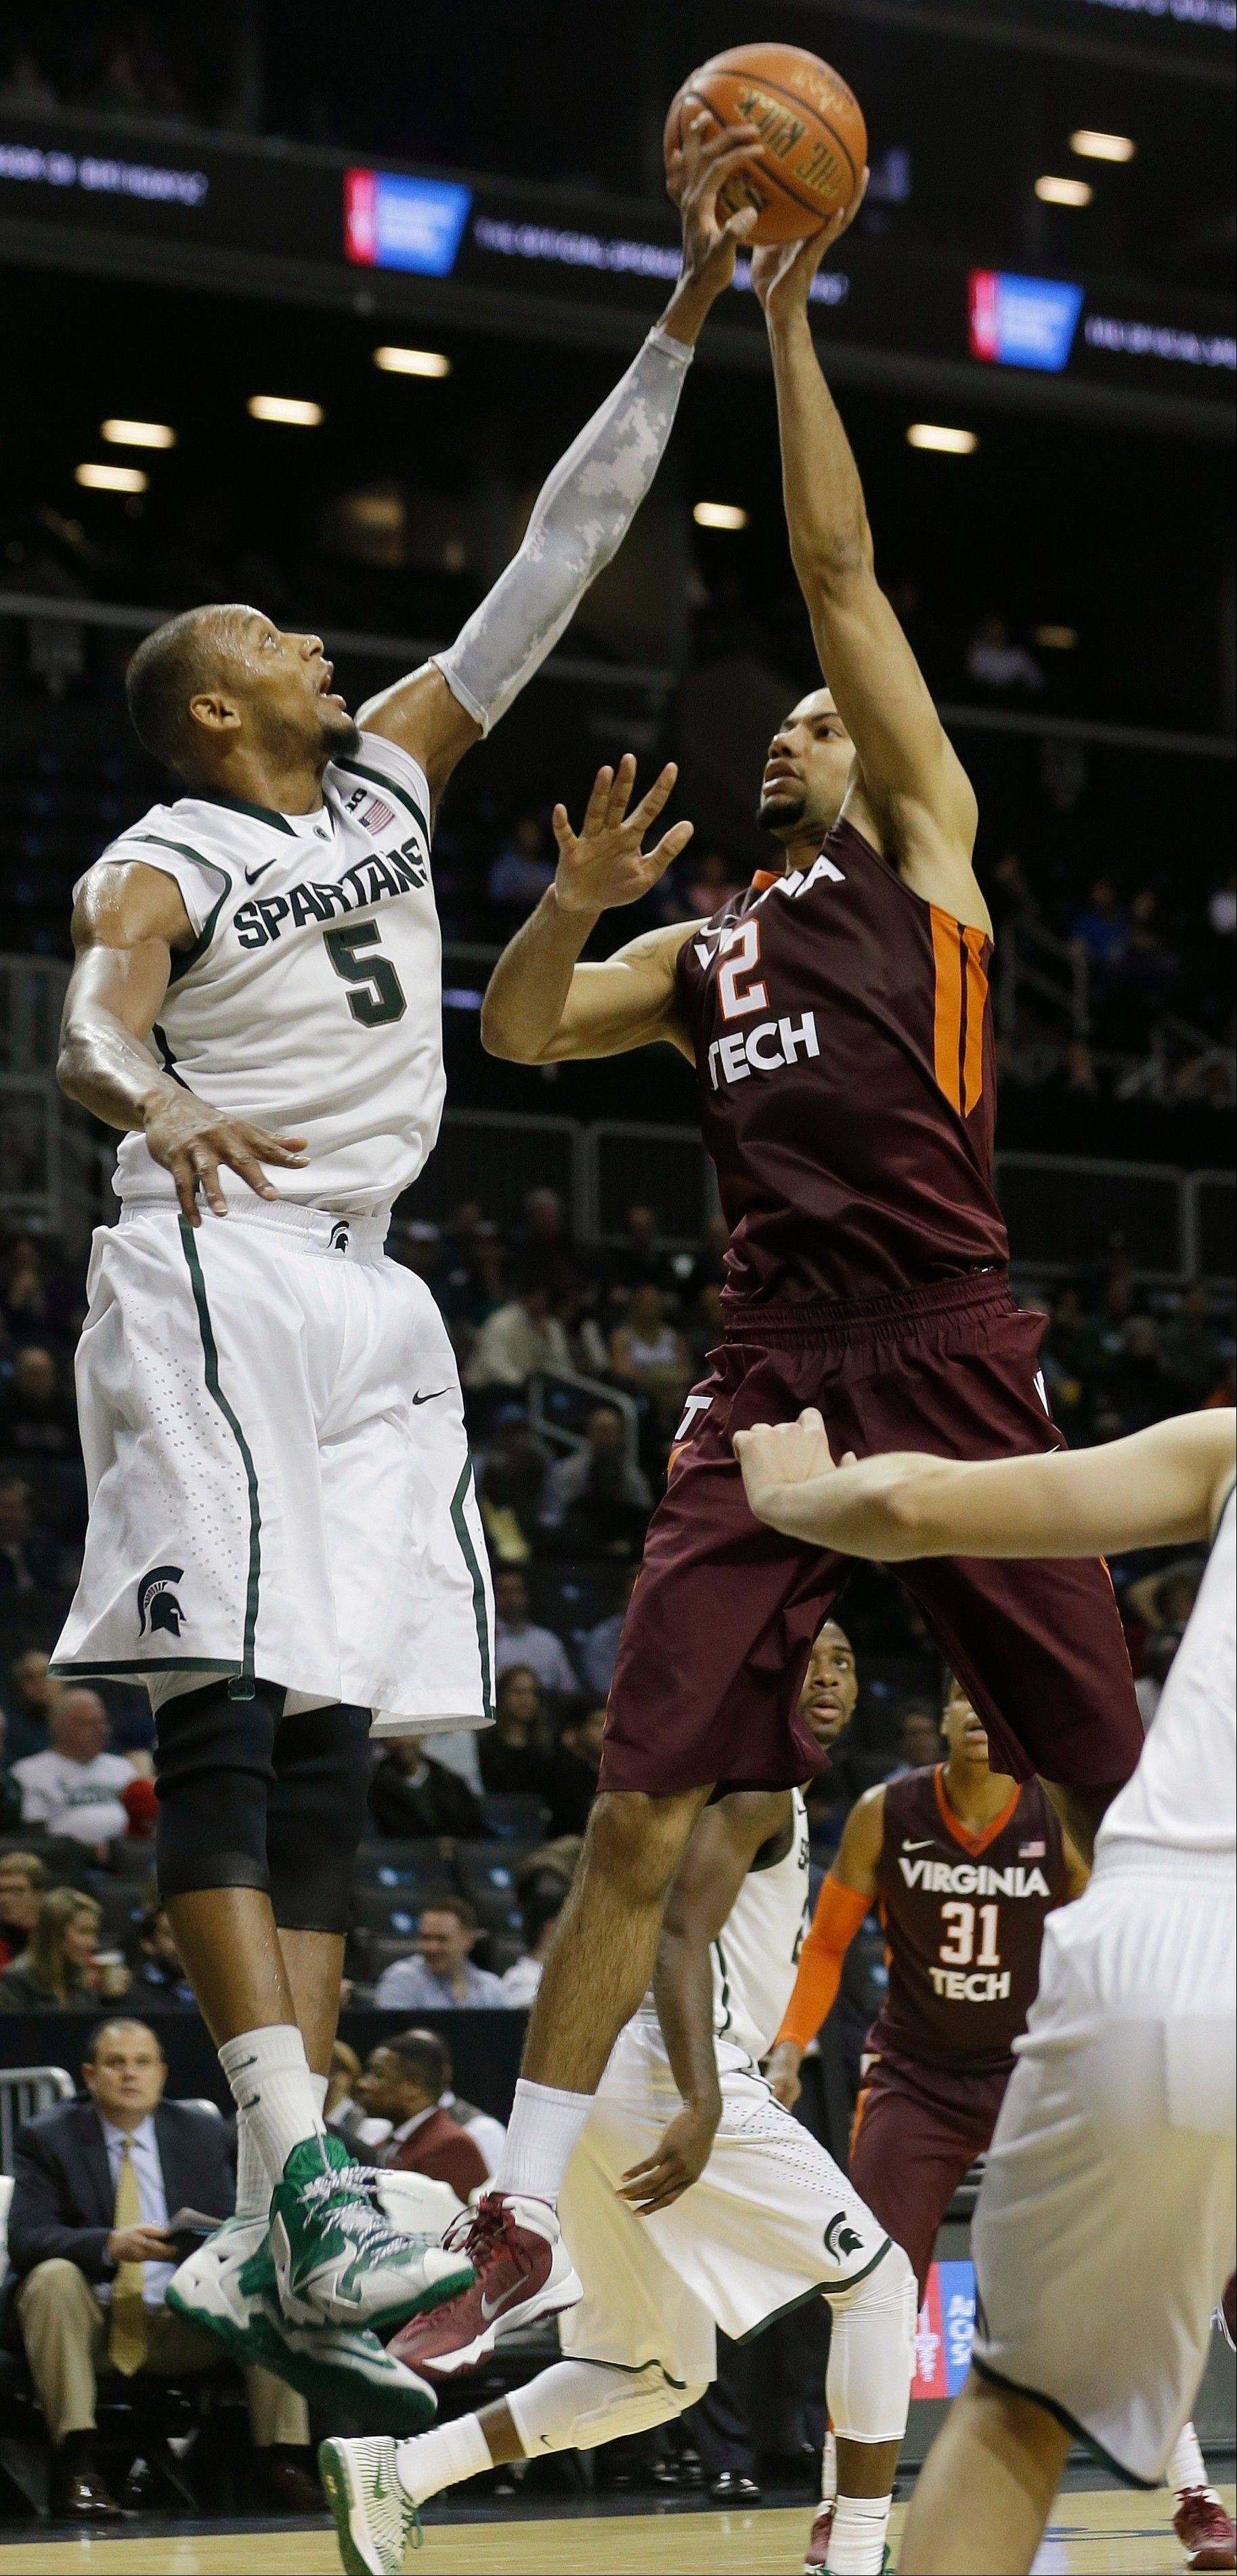 Michigan State�s Adreian Payne blocks a shot by Virginia Tech�s Joey Van Zegeren during the second half of a Coaches vs. Cancer Classic game on Friday in New York.